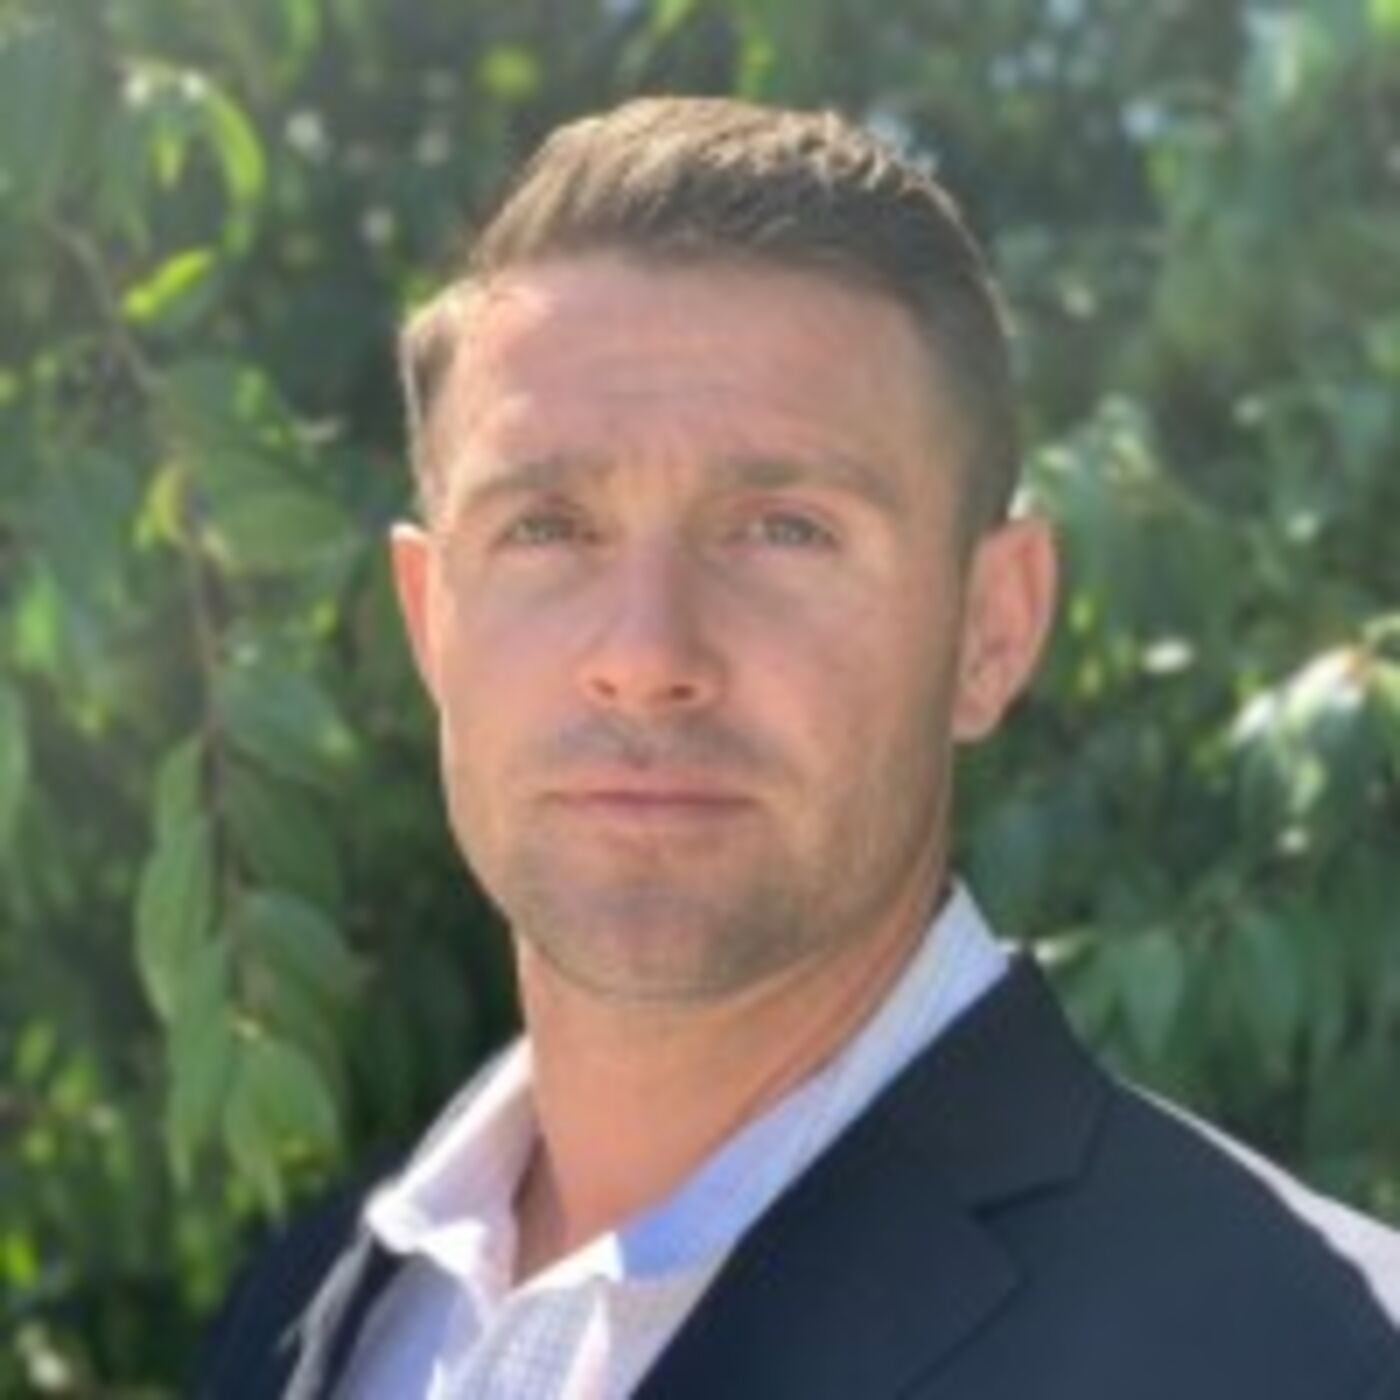 Ryan Cole - Marine, CounterIntelligence & Human Intelligence Expert and Founder Condition 1 Coffee Company (Season 3, Episode #47)